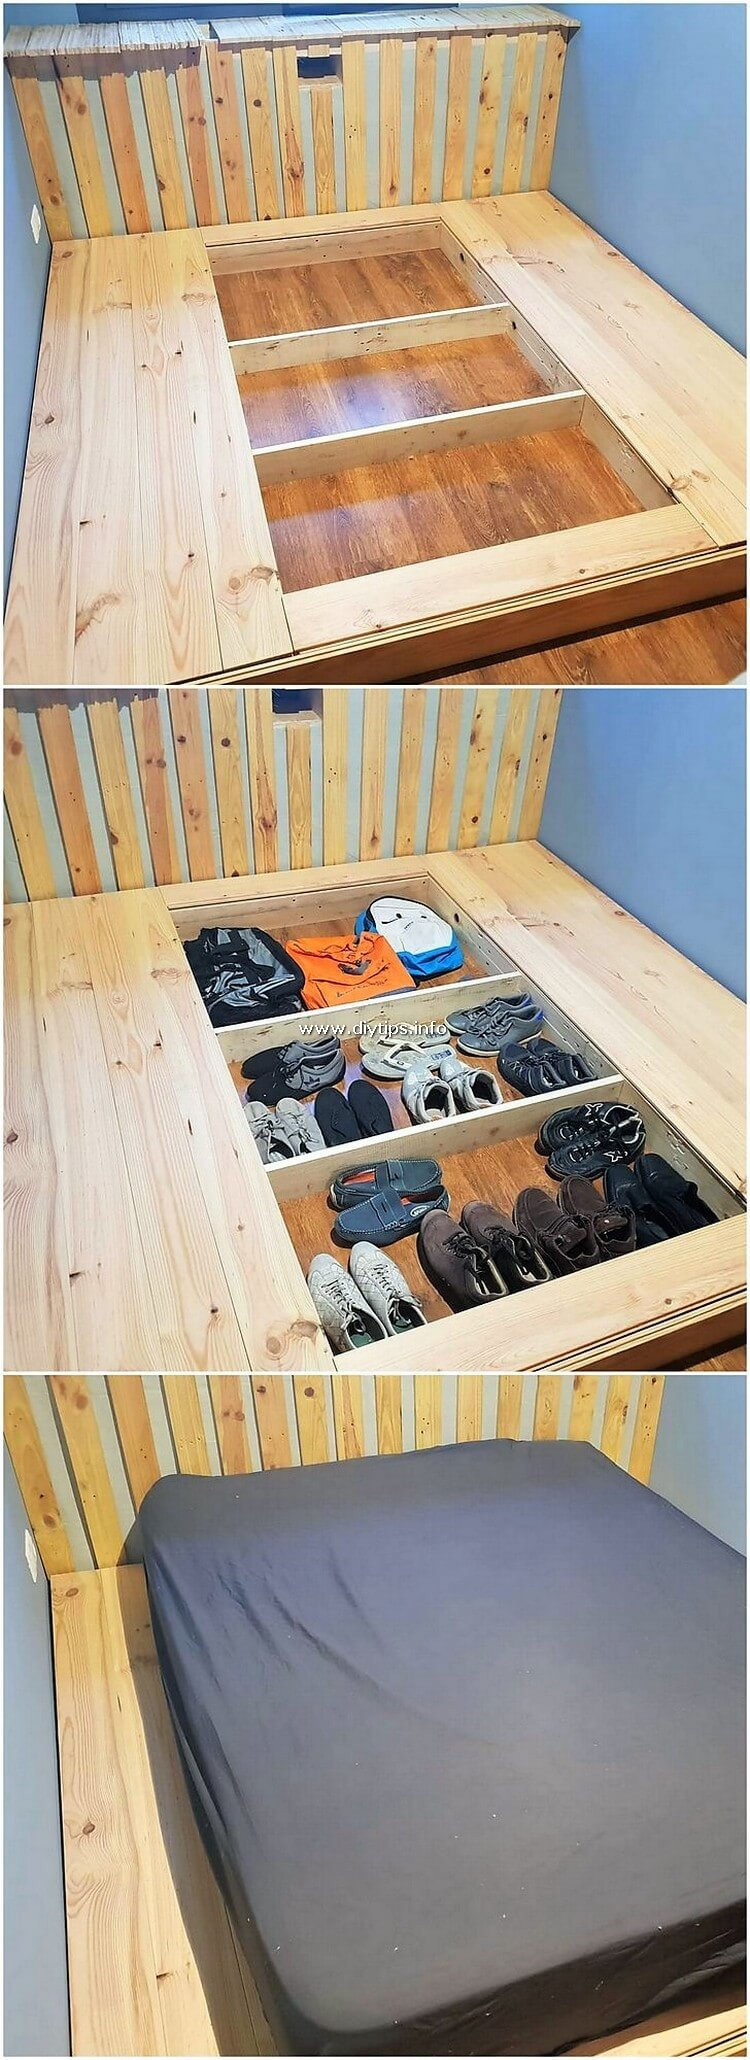 Pallet Bed with Clothes and Shoe Storage